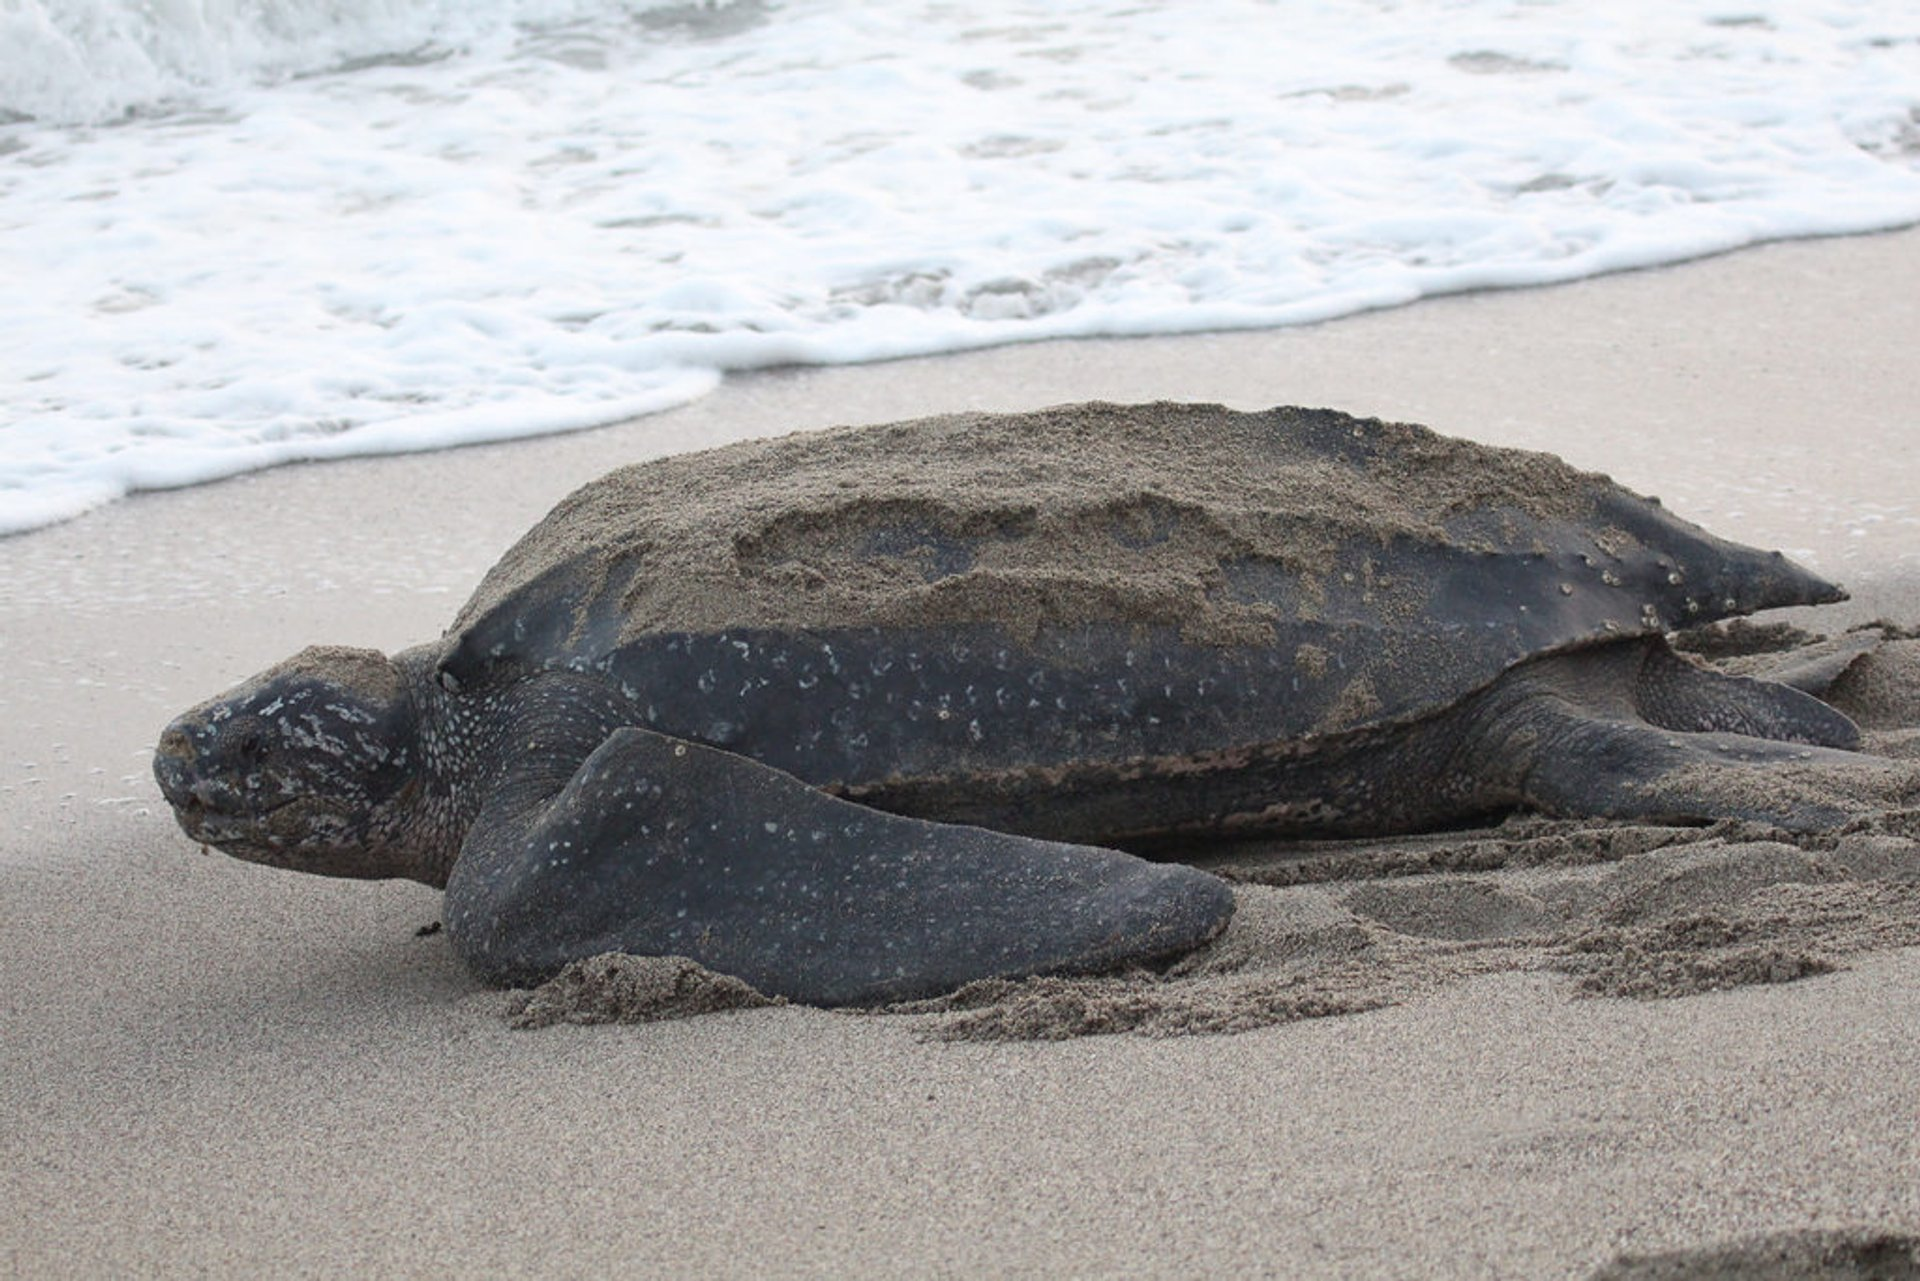 Leatherback Turtles on the Pacific in Costa Rica - Best Season 2020